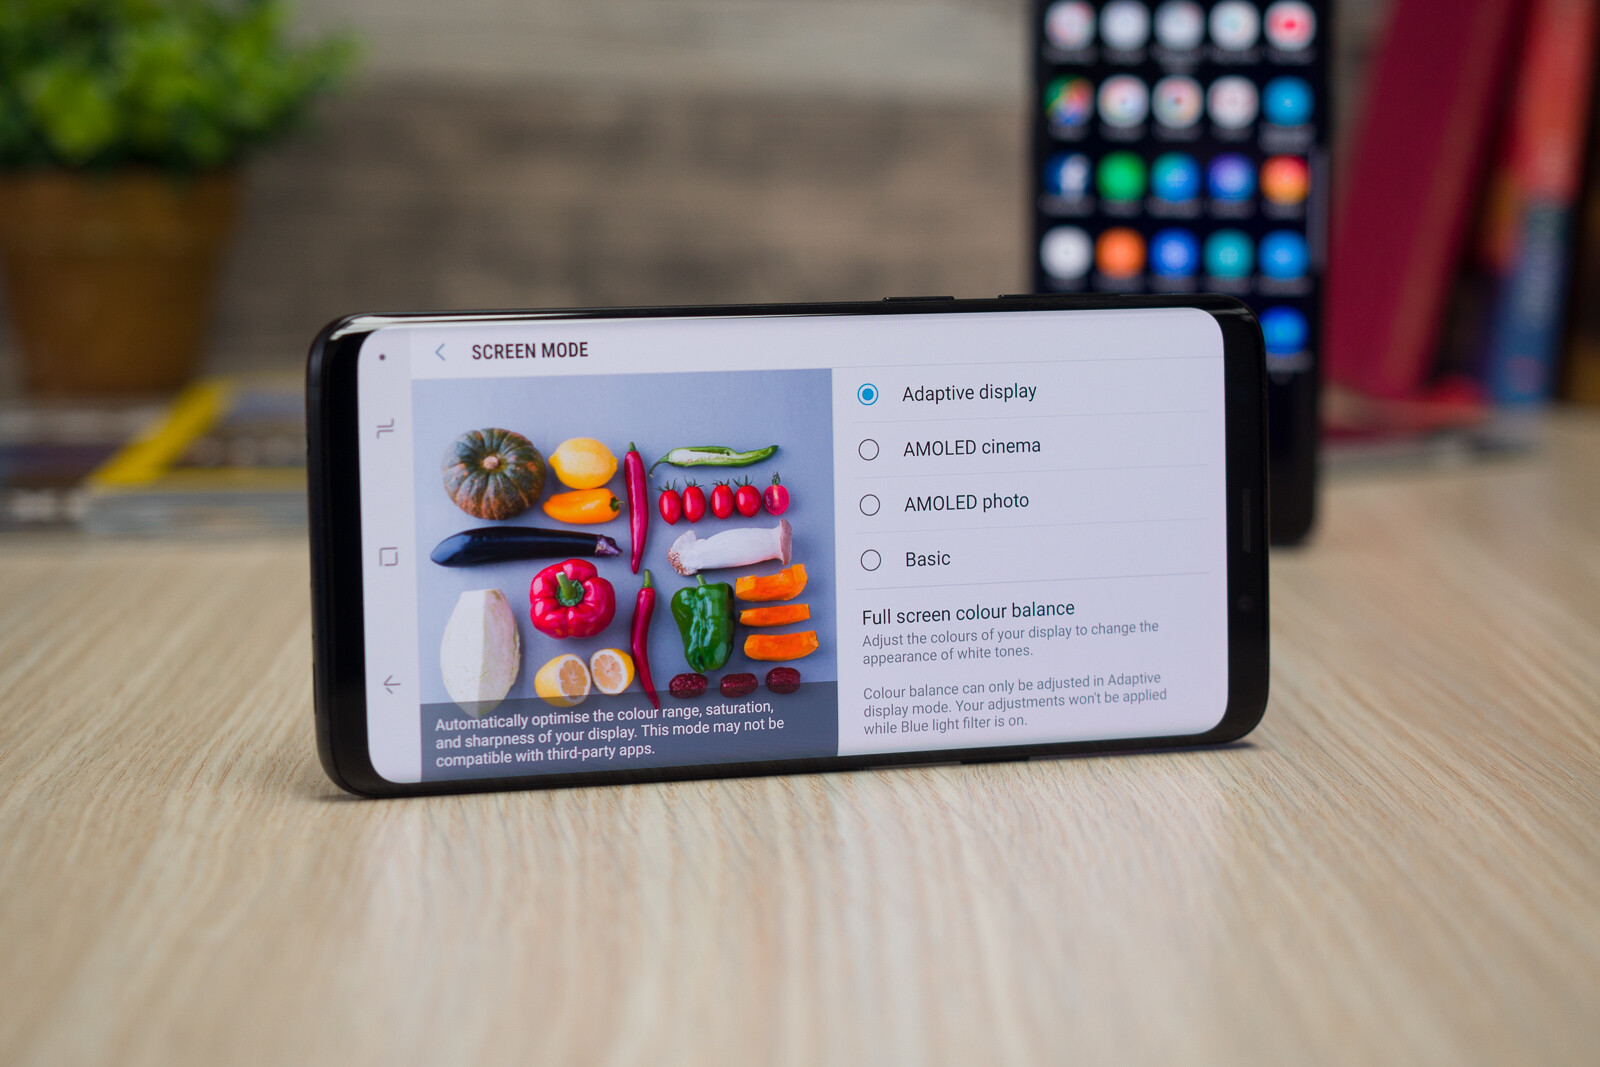 Samsung Galaxy S9/S9+ Q&A: Your questions answered! - PhoneArena